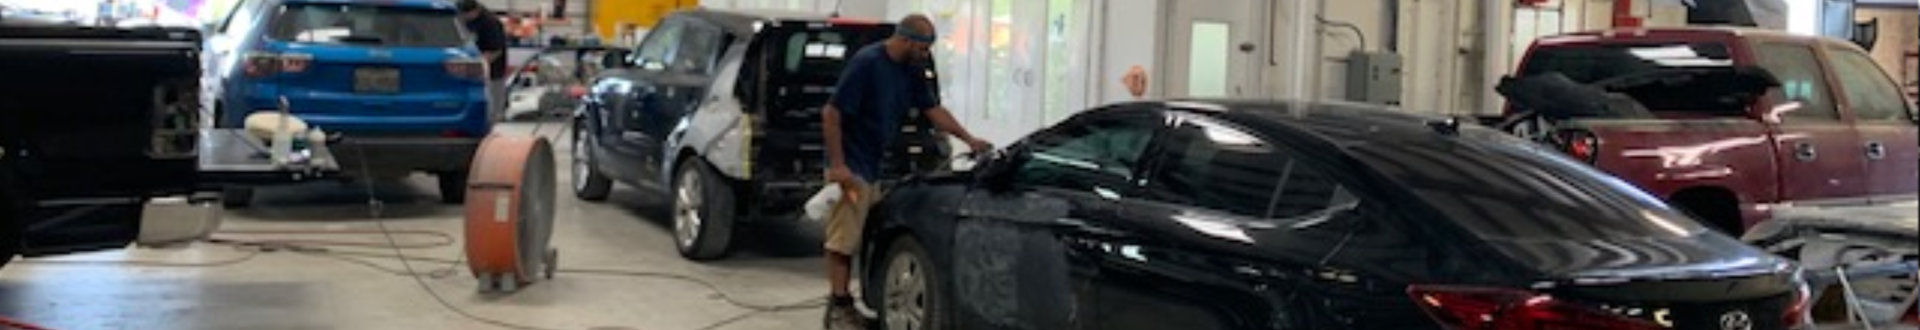 african man cleaning the car